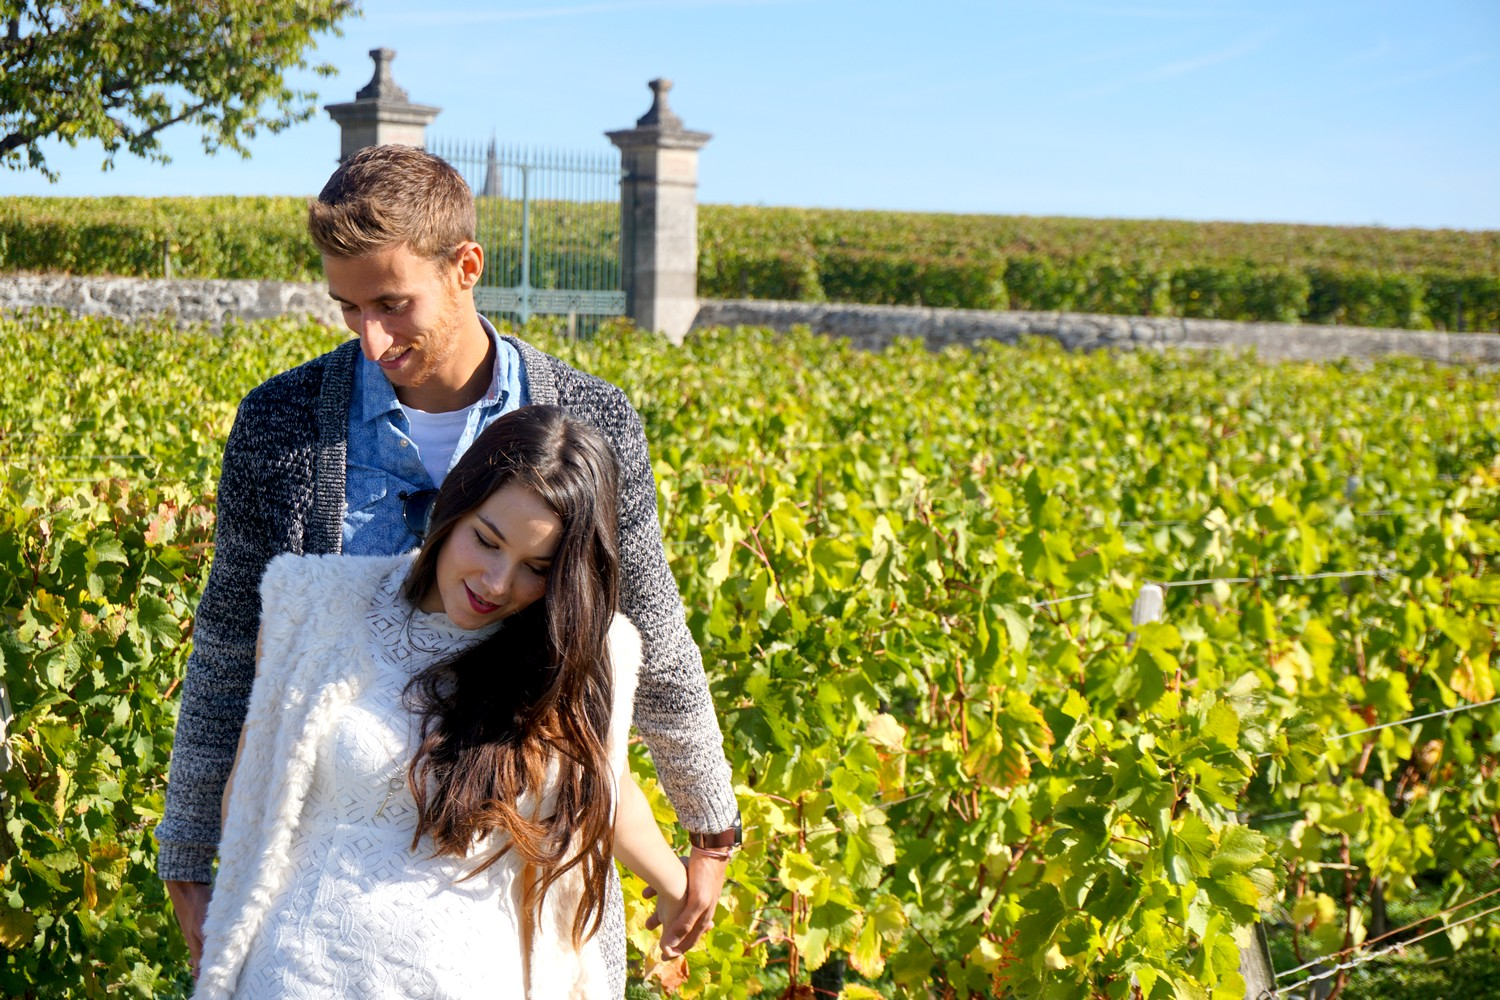 1-an-du-blog-en-couple-bordeaux-corse-blog-voyage-lifestyle-mode-look-shooting-photo-couple-vigne-06